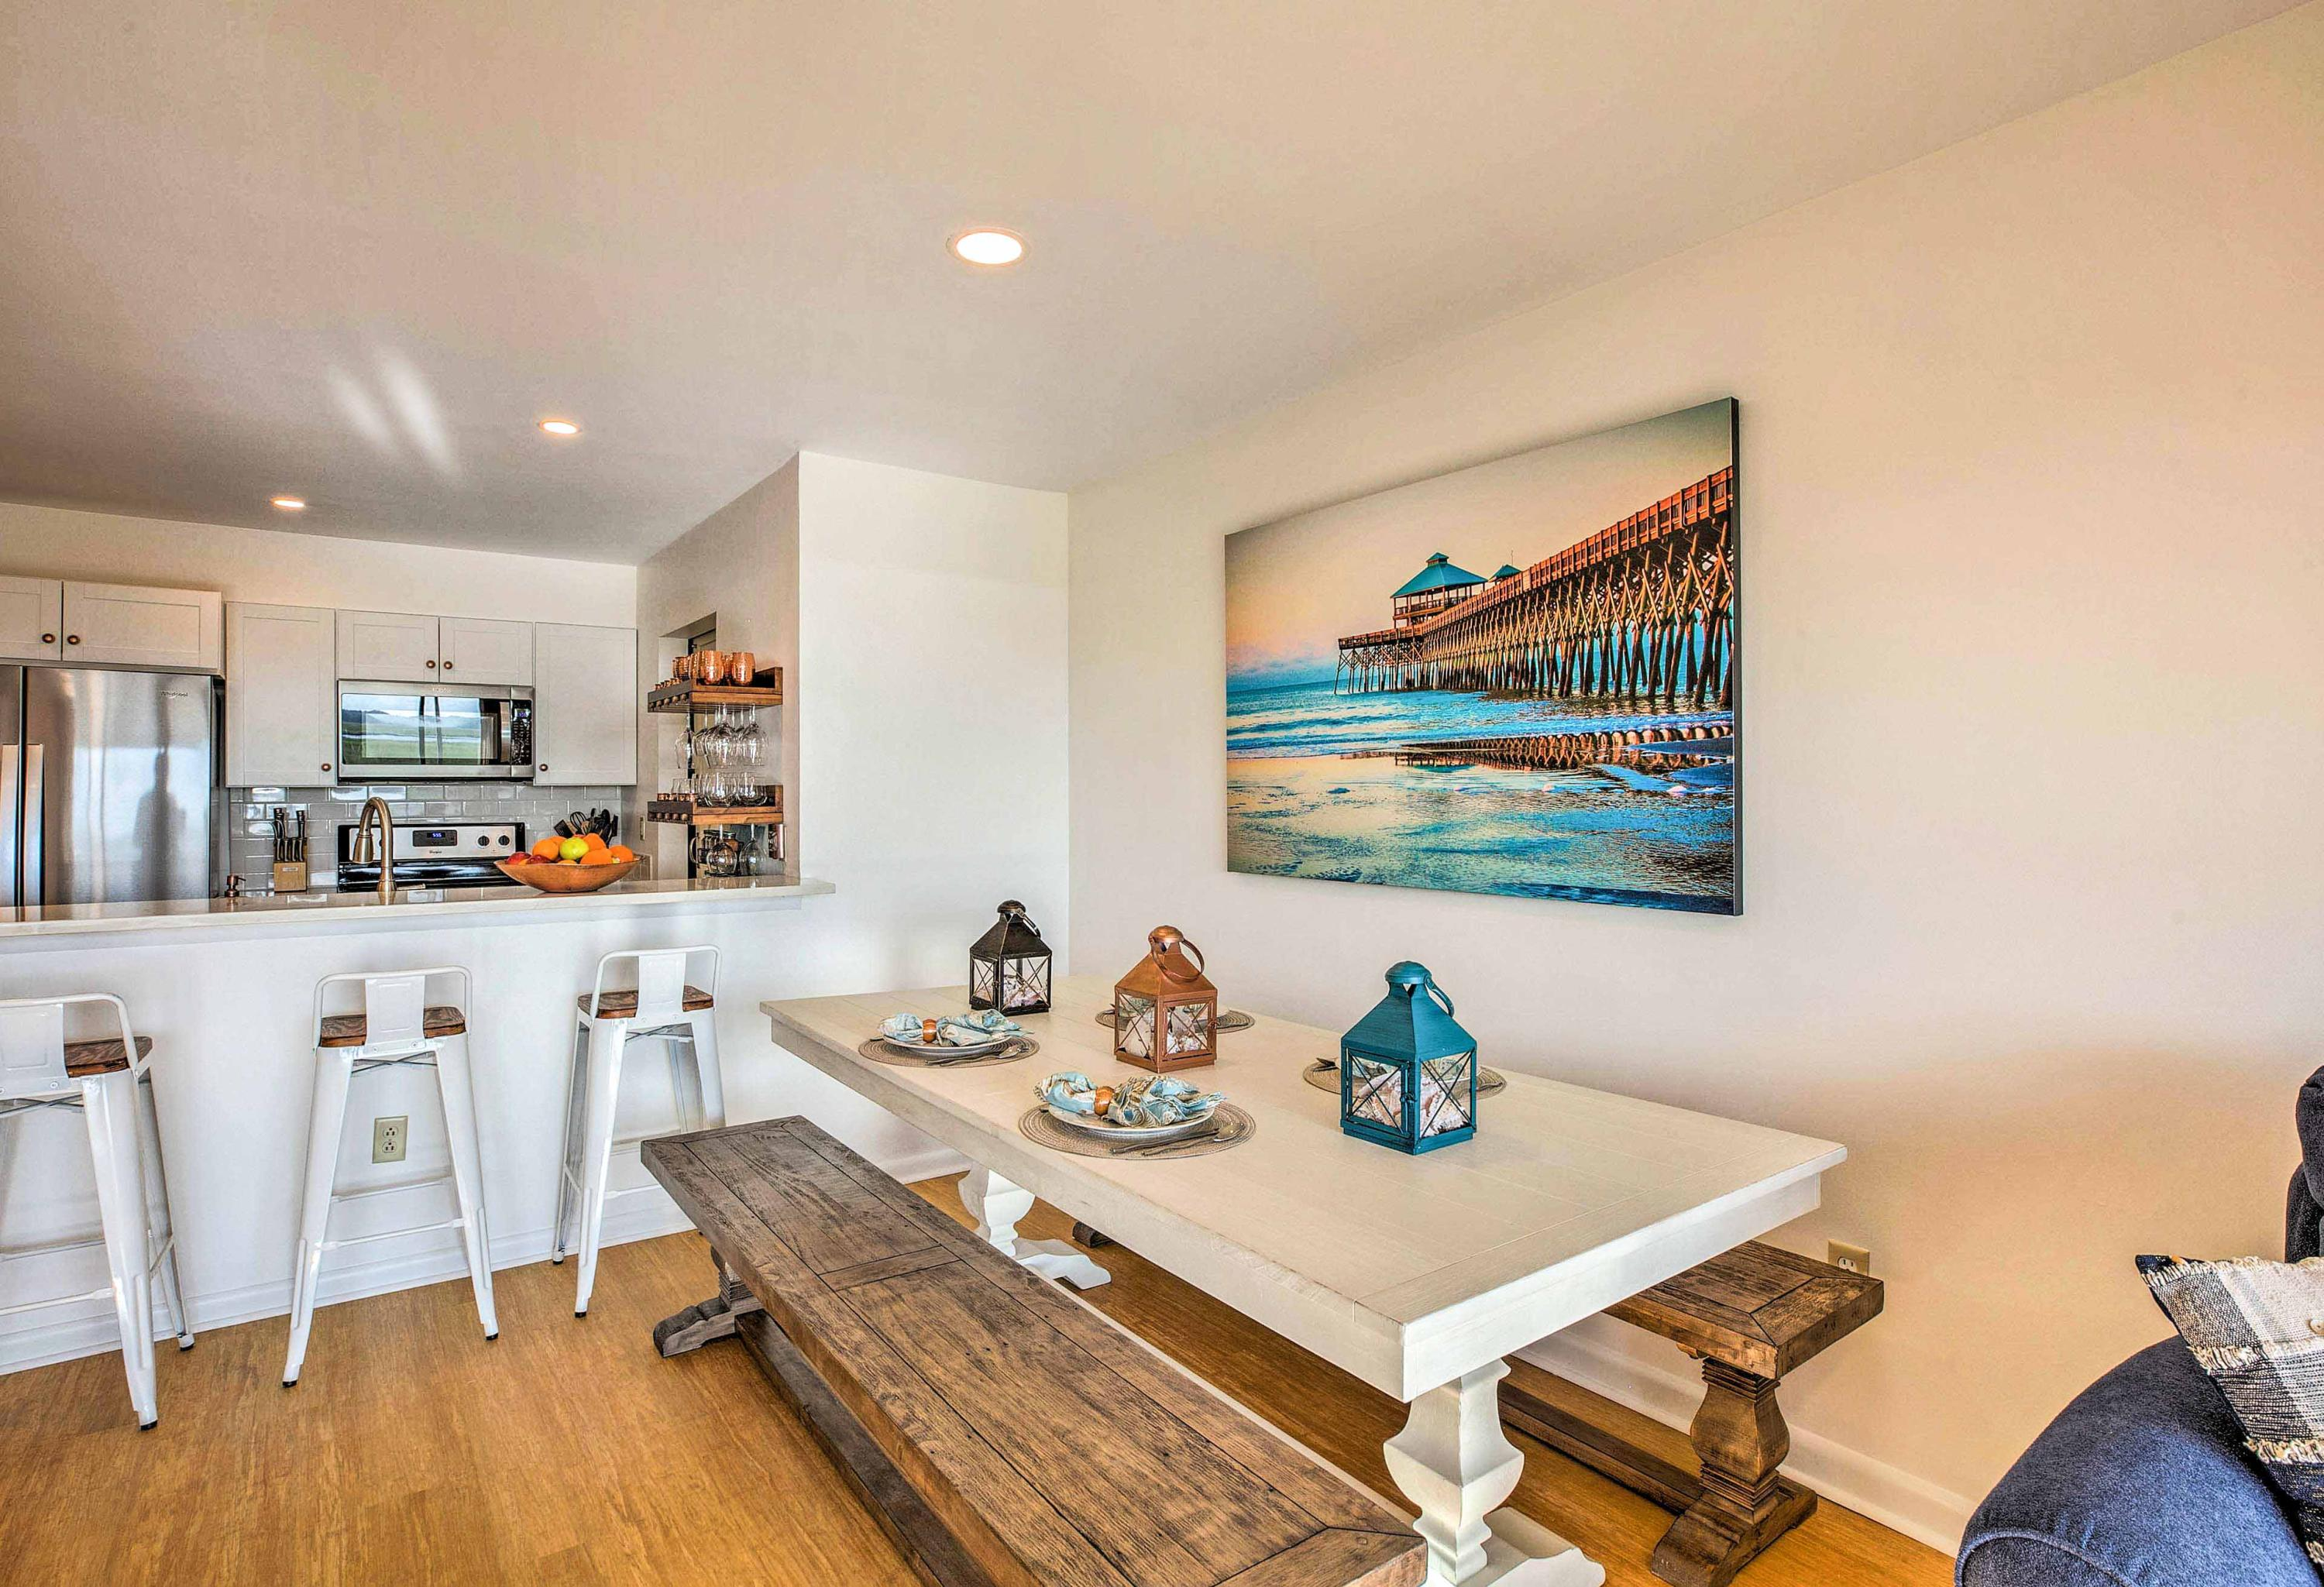 Mariners Cay Homes For Sale - 93 Mariners Cay, Folly Beach, SC - 32